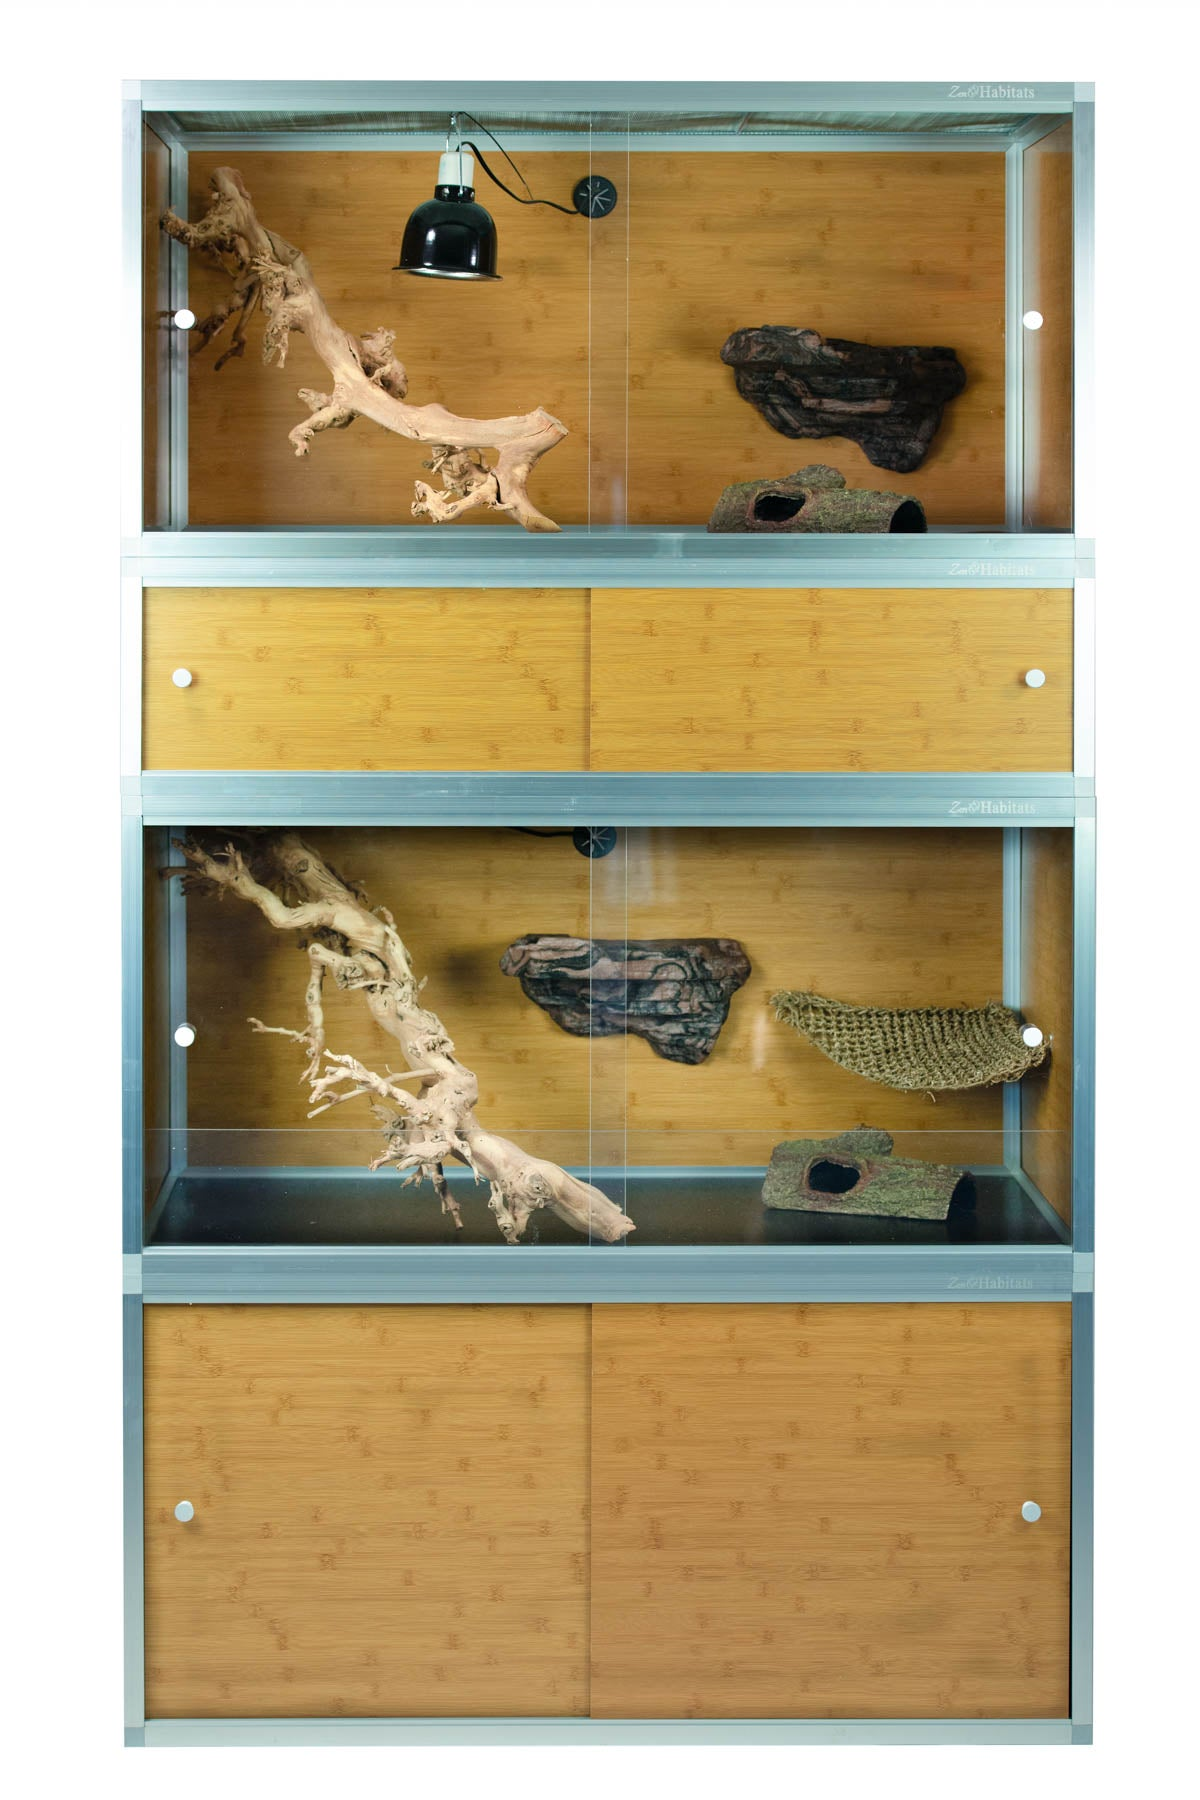 4 X2 X2 Pvc Panel Bearded Dragon Enclosure Just 389 Zen Habitats This transparent plastic ball has a small lid which allows you to why your bearded dragon needs exercise. usd